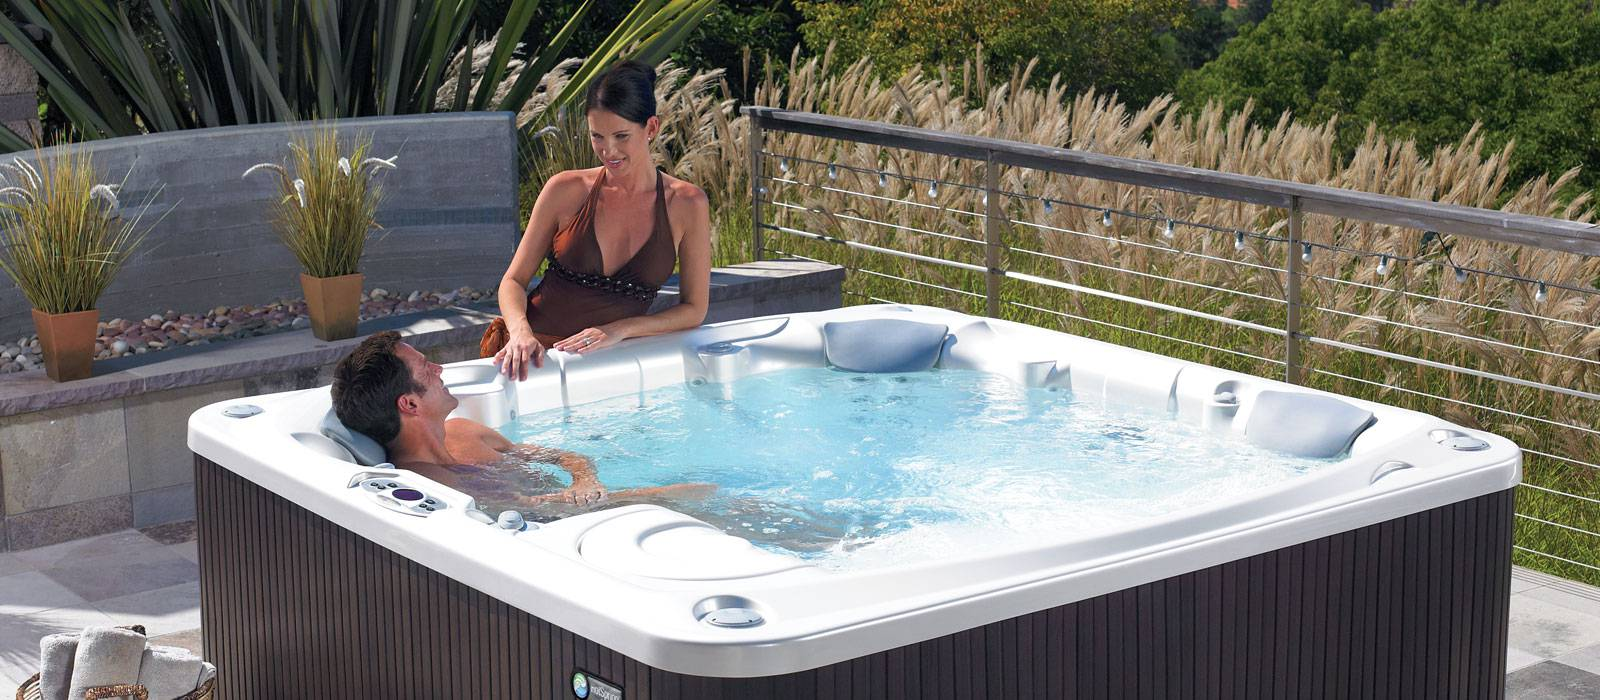 The spacious Flair hot tub seats 6 comfortably, so everyone can feel at home in the spa. Relax with 41 powerful jets, cushioned headrests and innovative features to enhance your spa experience.